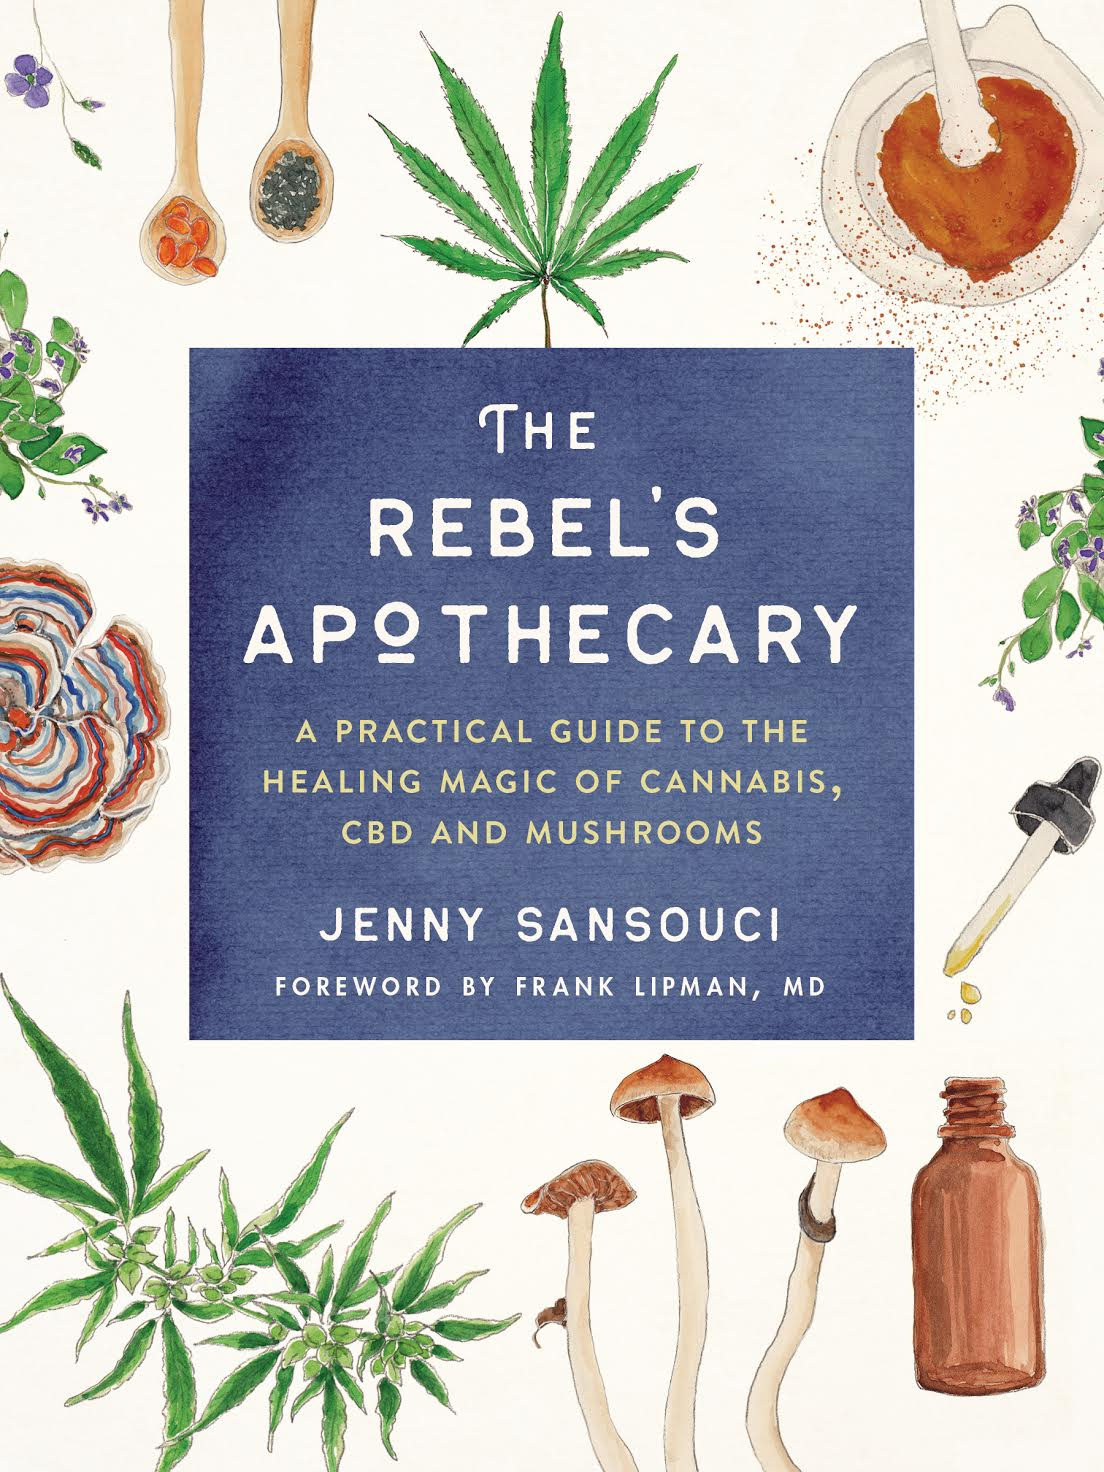 The Rebel's Apothecary by Jenny Sansouci | first-time author